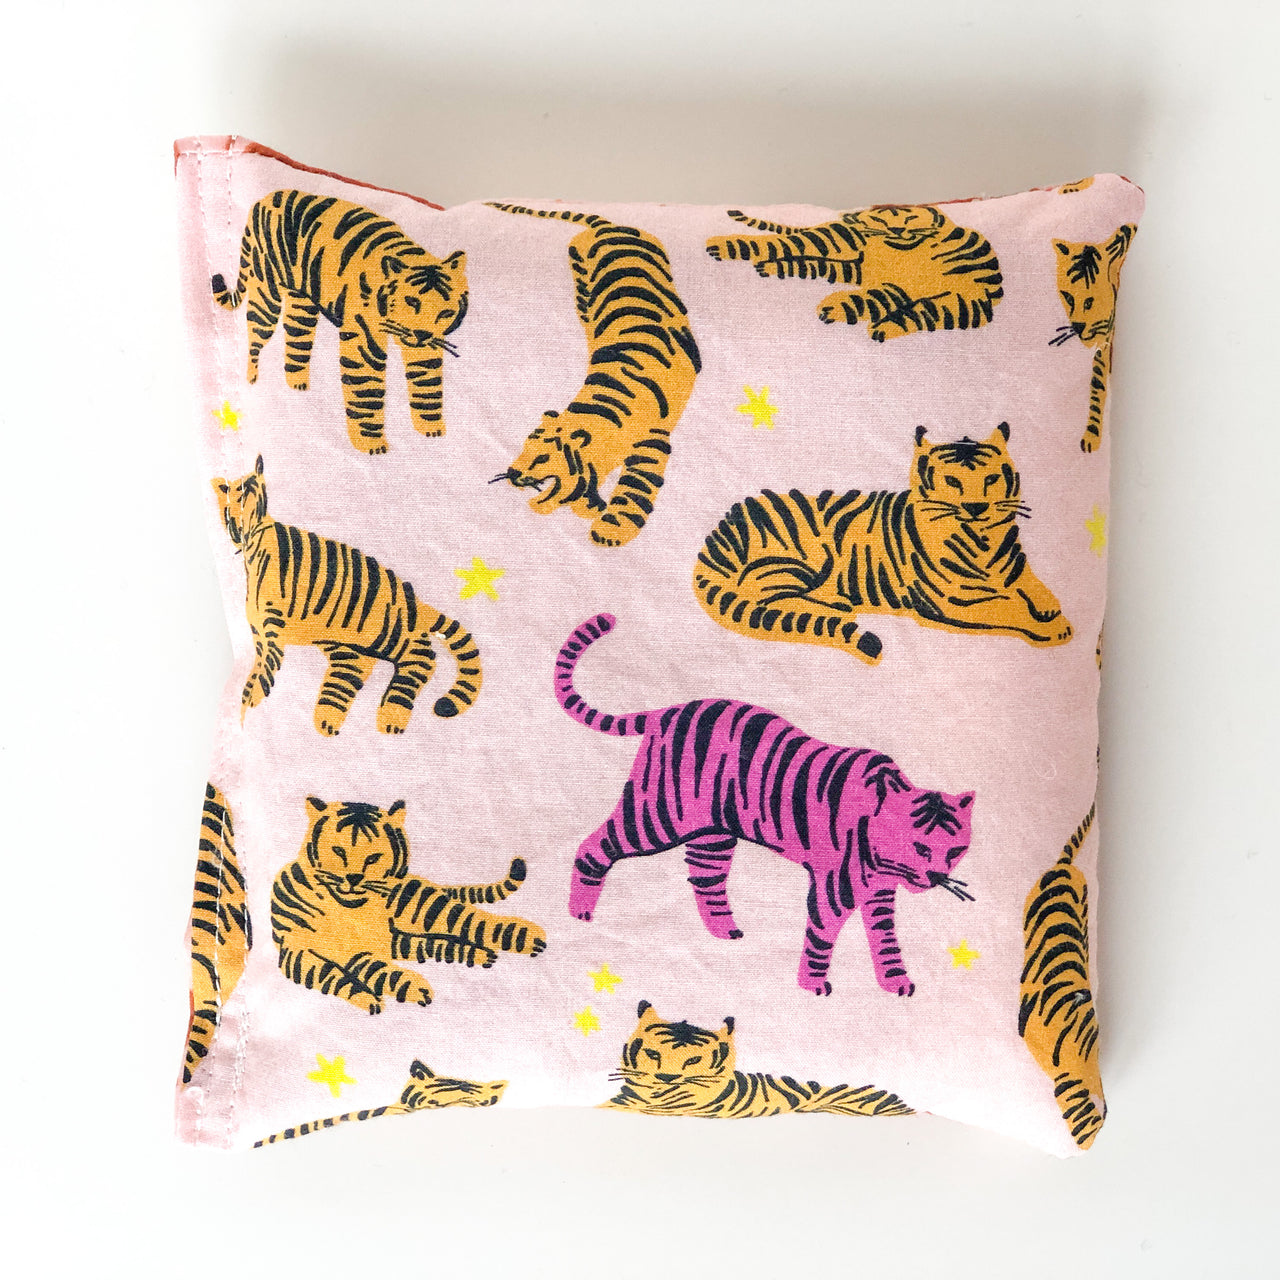 Lavender pillow - pink tigers and desert feels